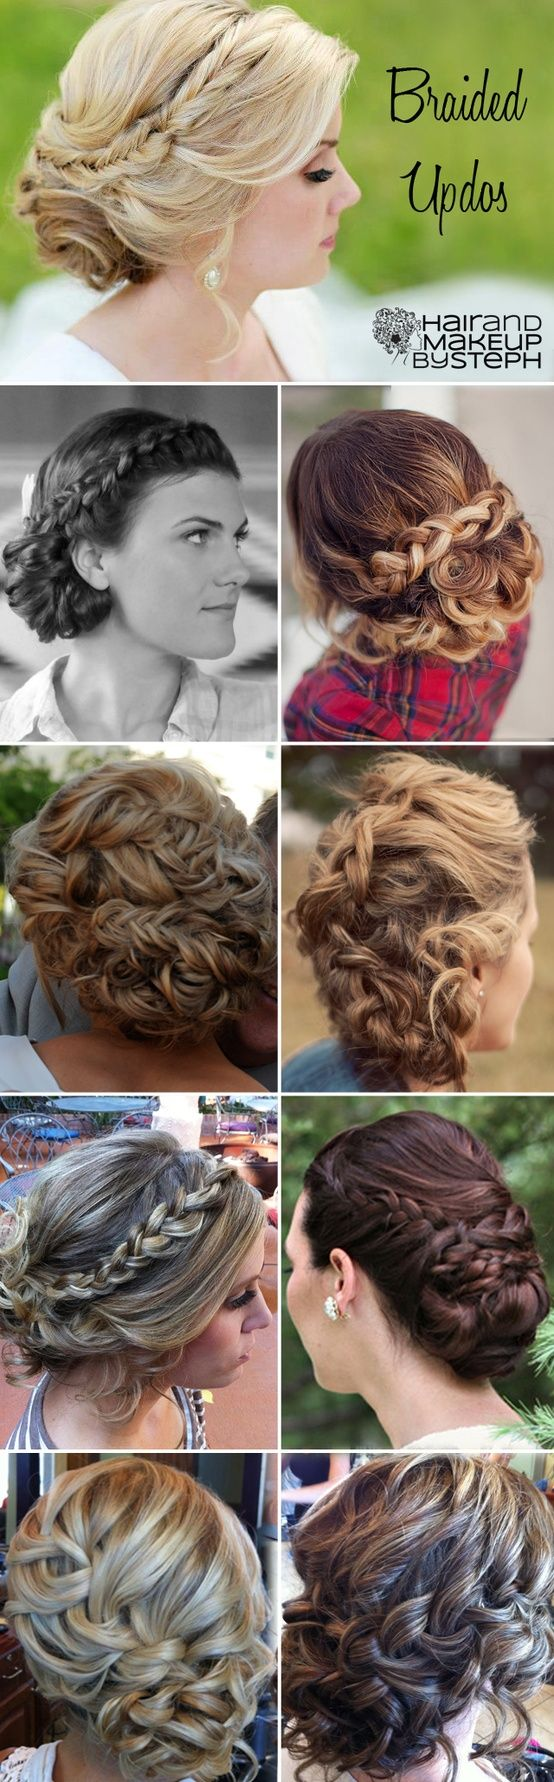 Can't decide what I want to do with my hair for the wedding!